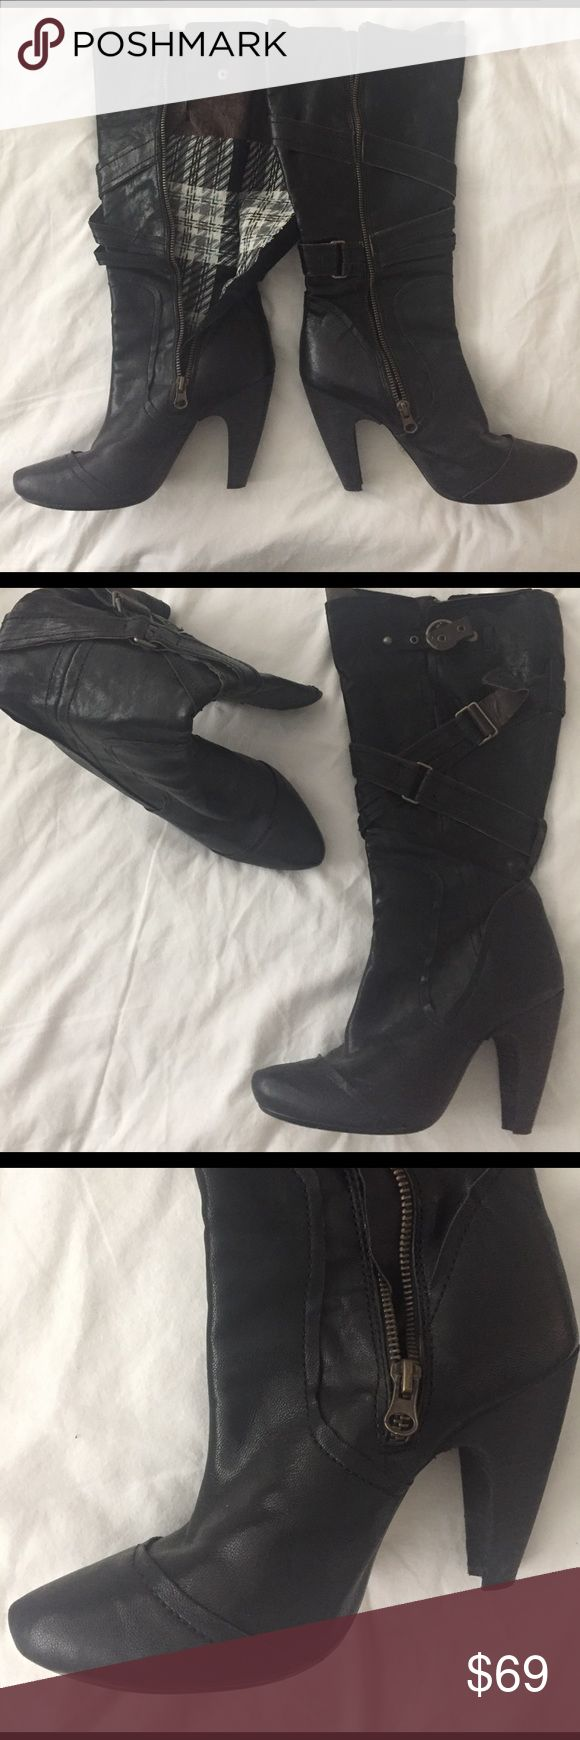 Super super cute Seychelles BOOT. Seychelles leather upper balance man. Super cute. Like new. They were wore twice. Perfect condition! Seychelles Shoes Heeled Boots